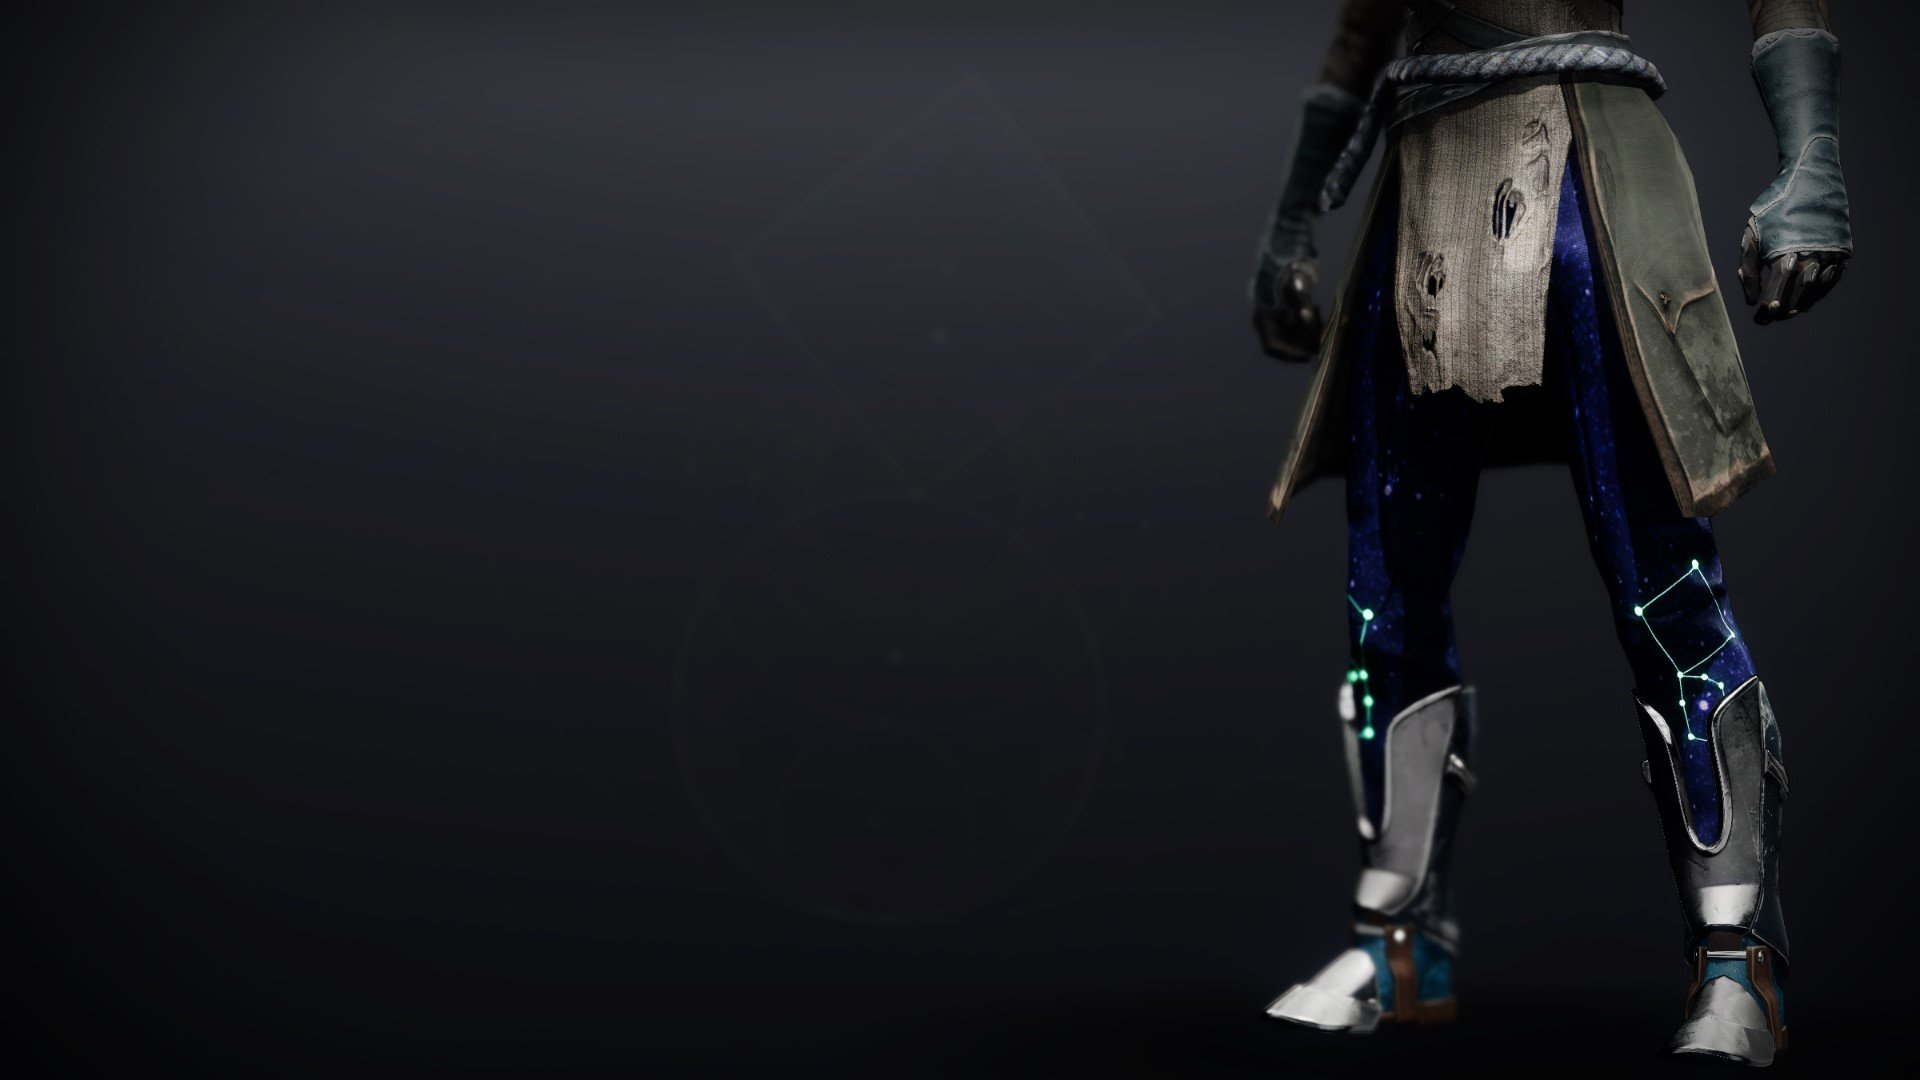 An in-game render of the Celestial Boots.